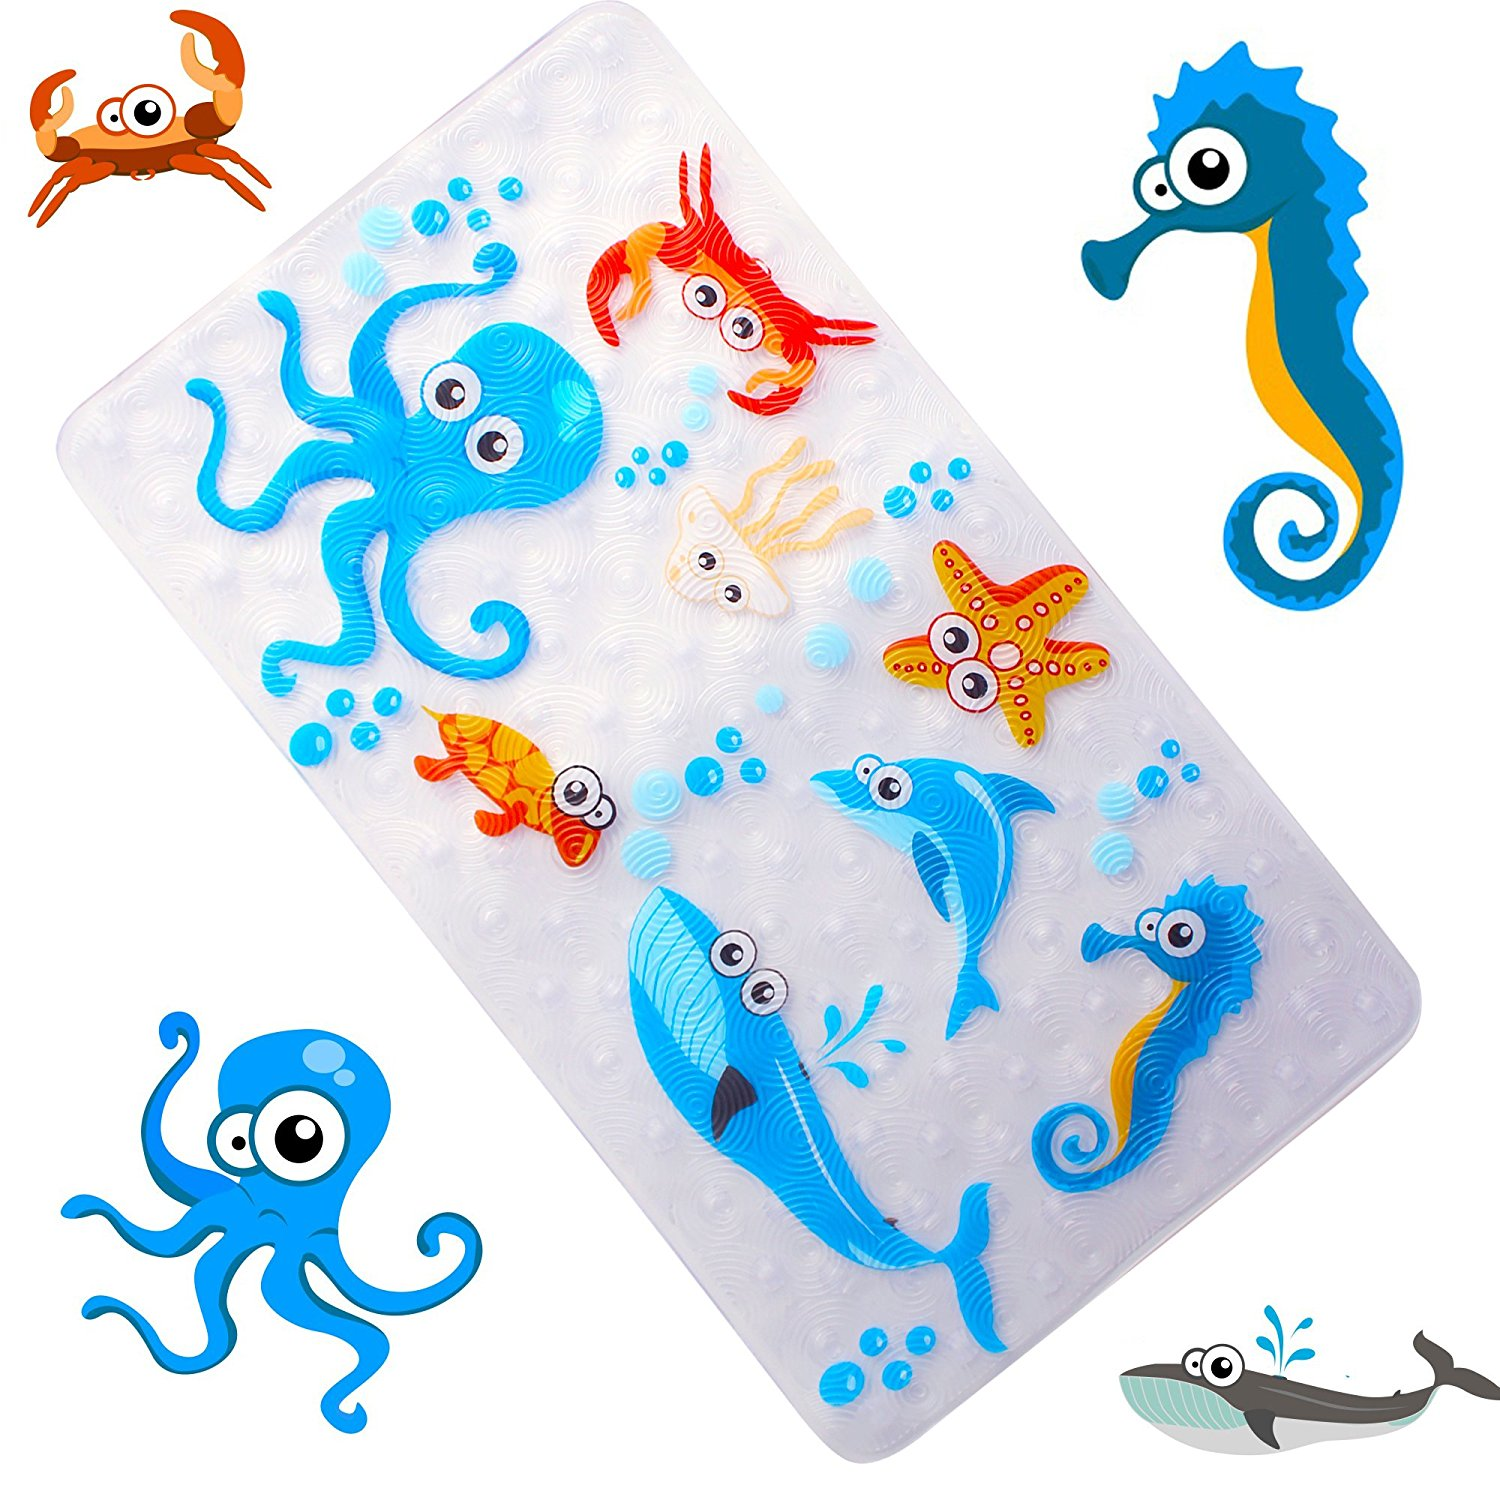 WoByt Multi-Purpose Bath Mat/PVC Material Baby Tub Mat Non Slip Mats Children & Shower Bathroom Safety Pattern from Ocean Octopus